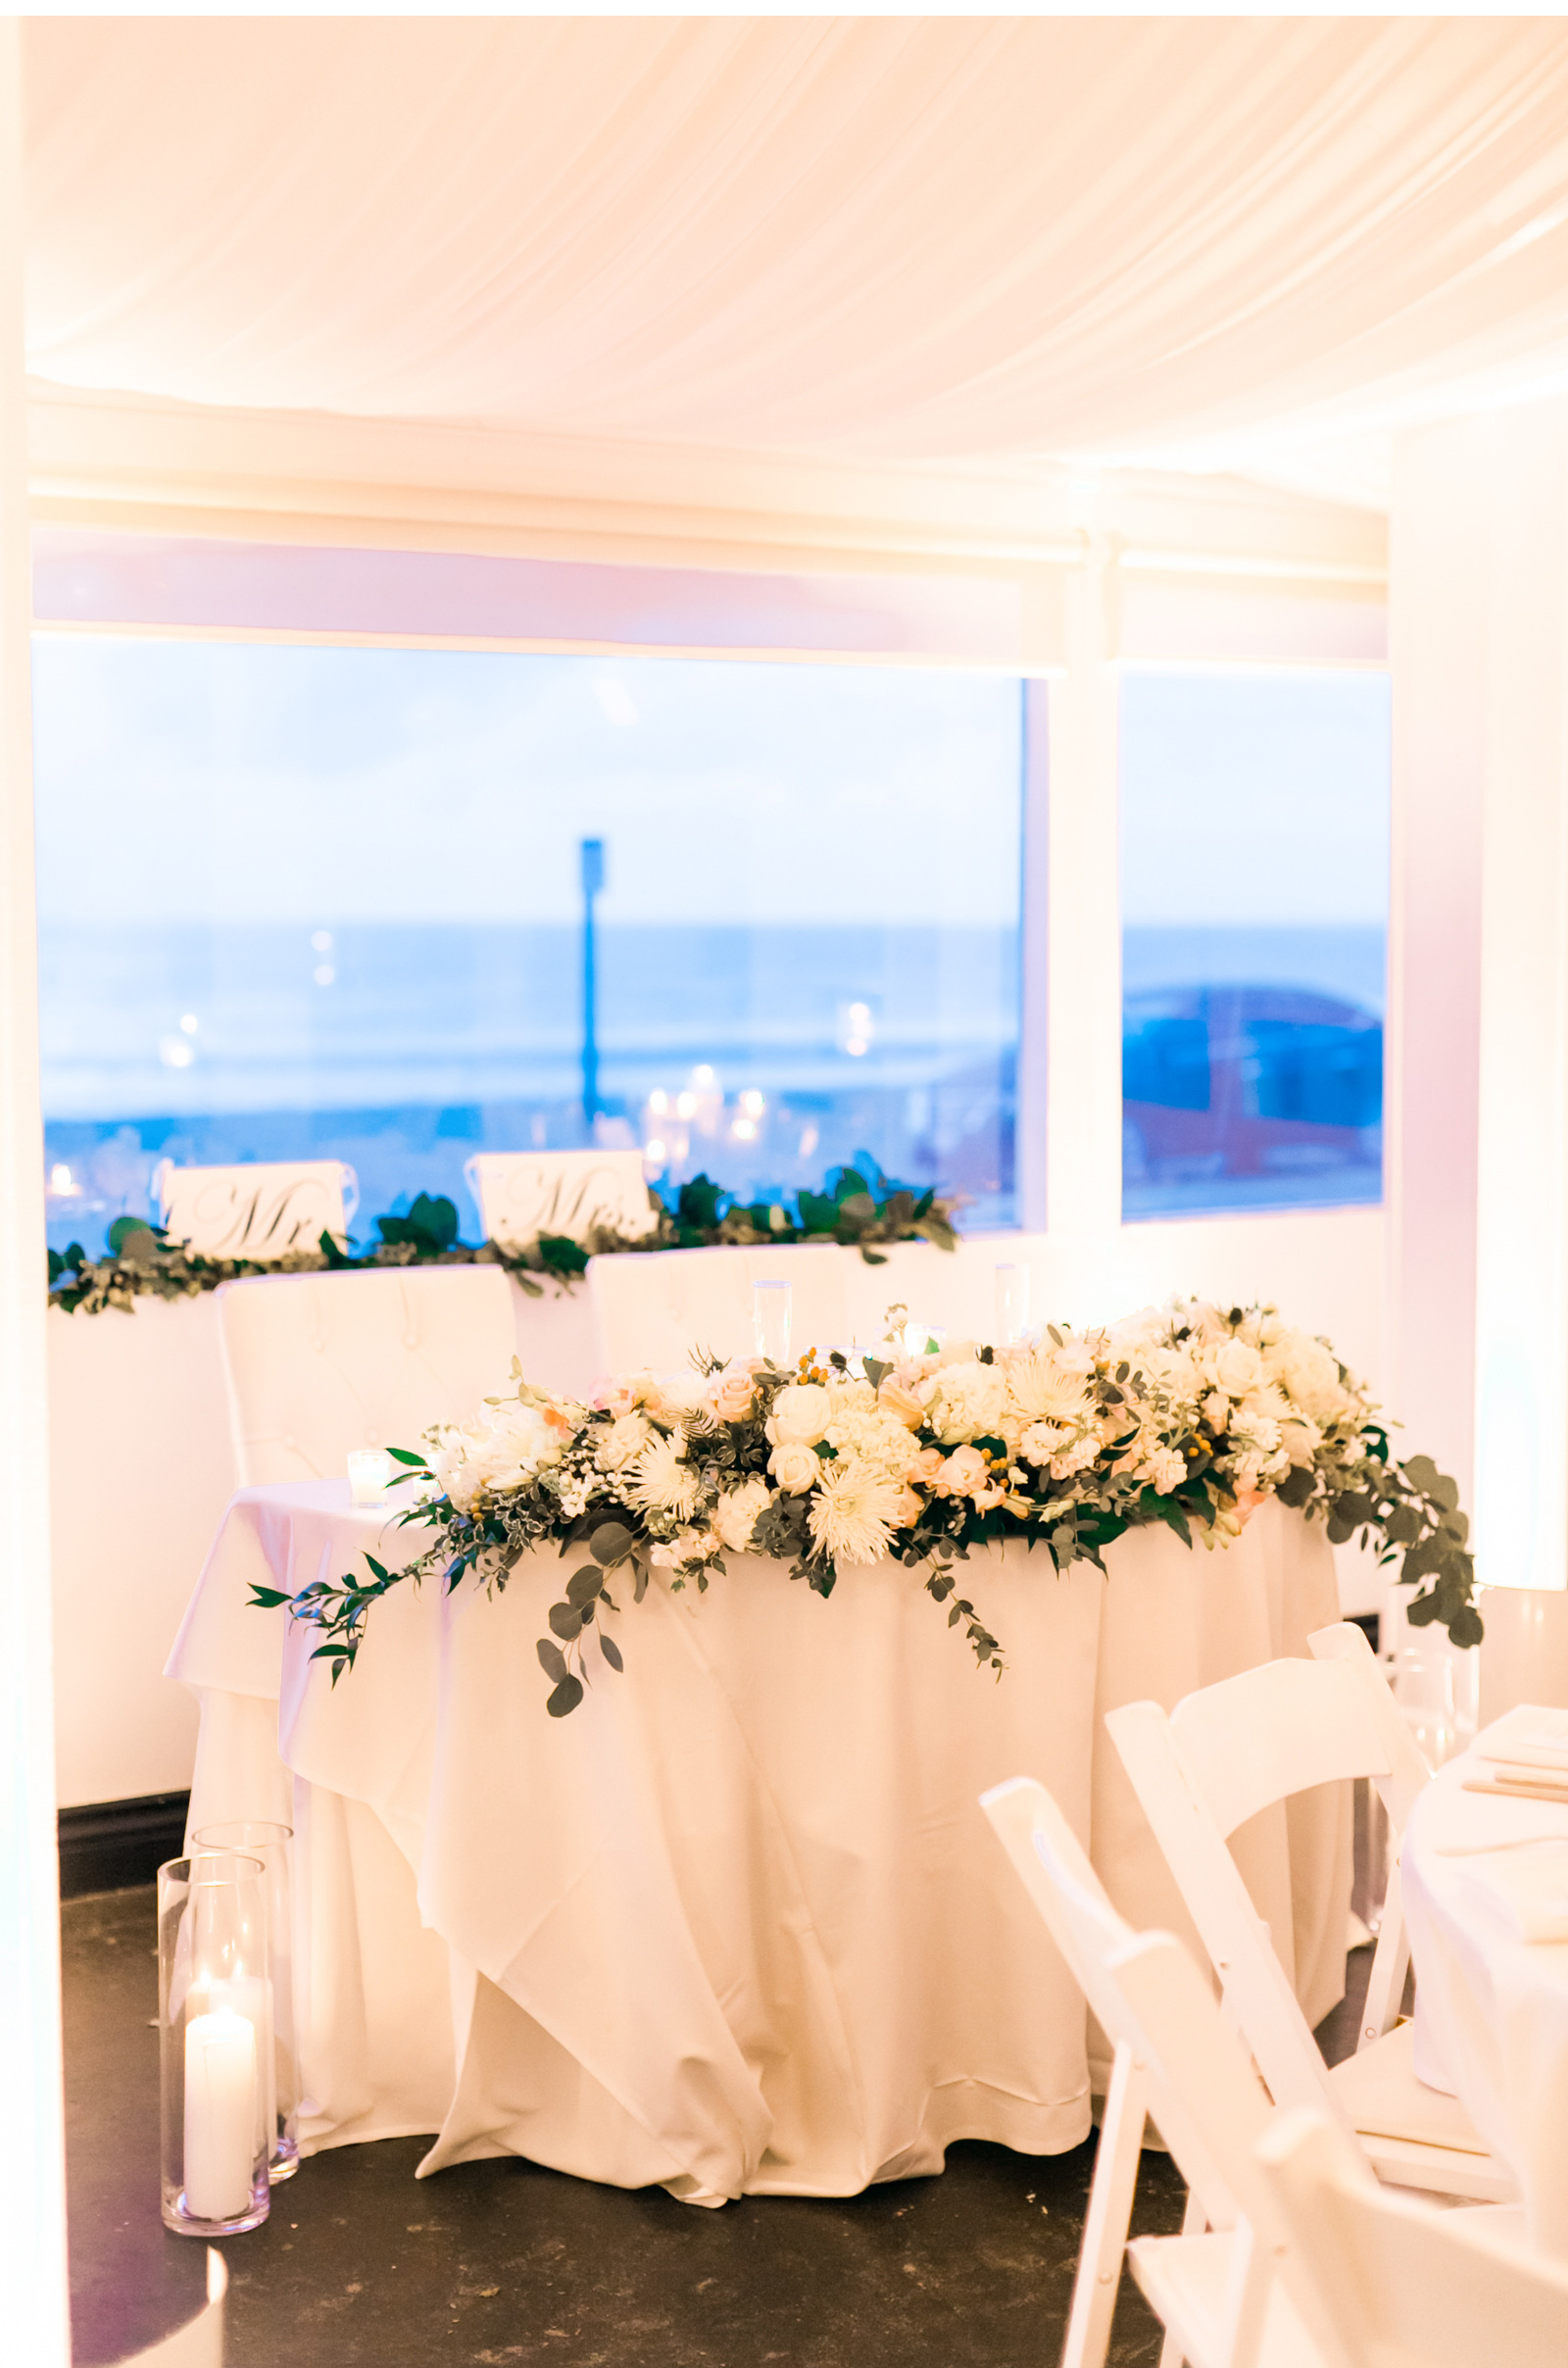 Sunset-Restaurant-Wedding-Natalie-Schutt-Photography_01_11.jpg